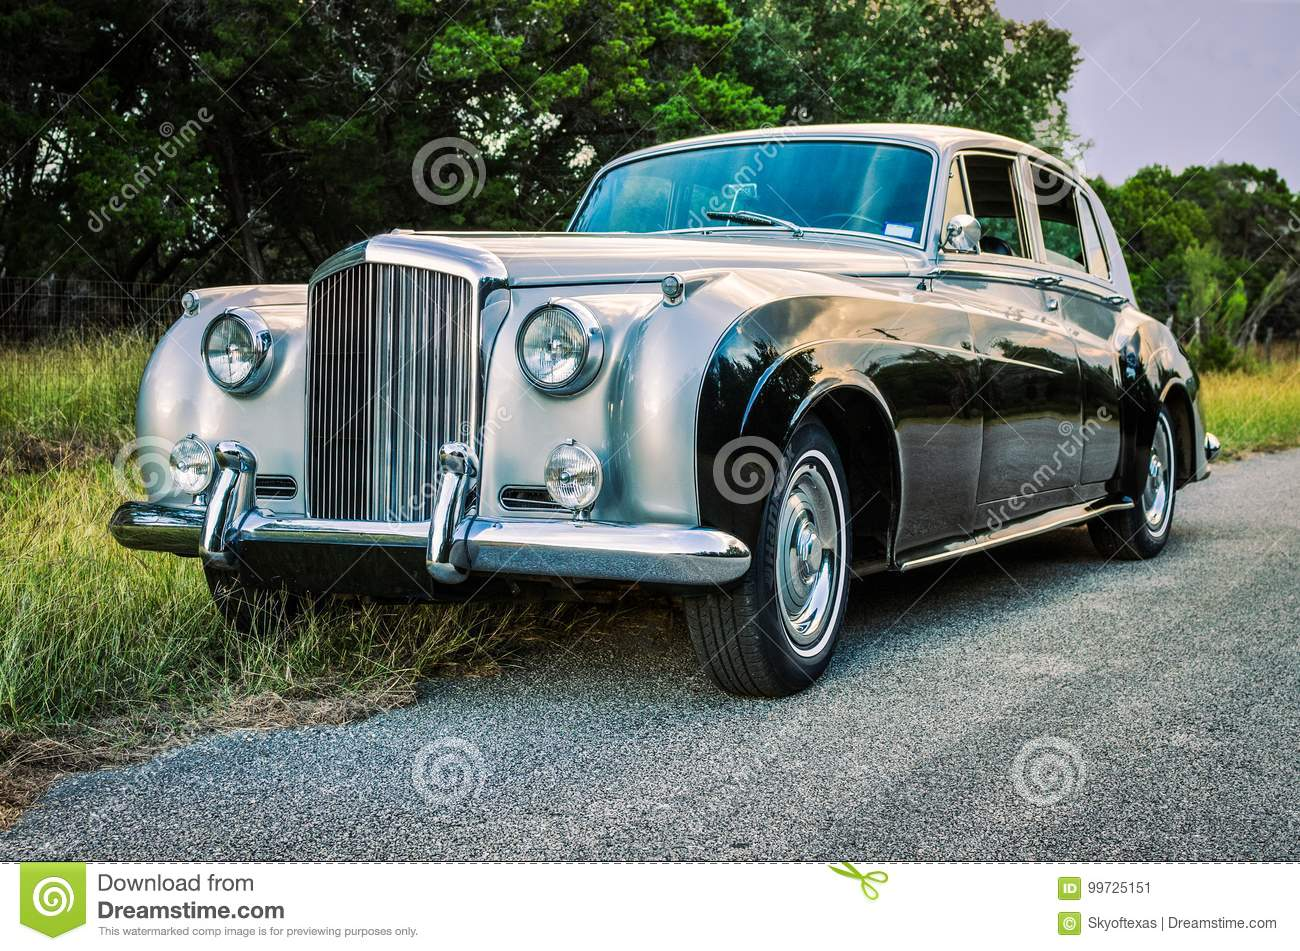 Luxurious, two-toned, vintage limousine on a rural Texas road.